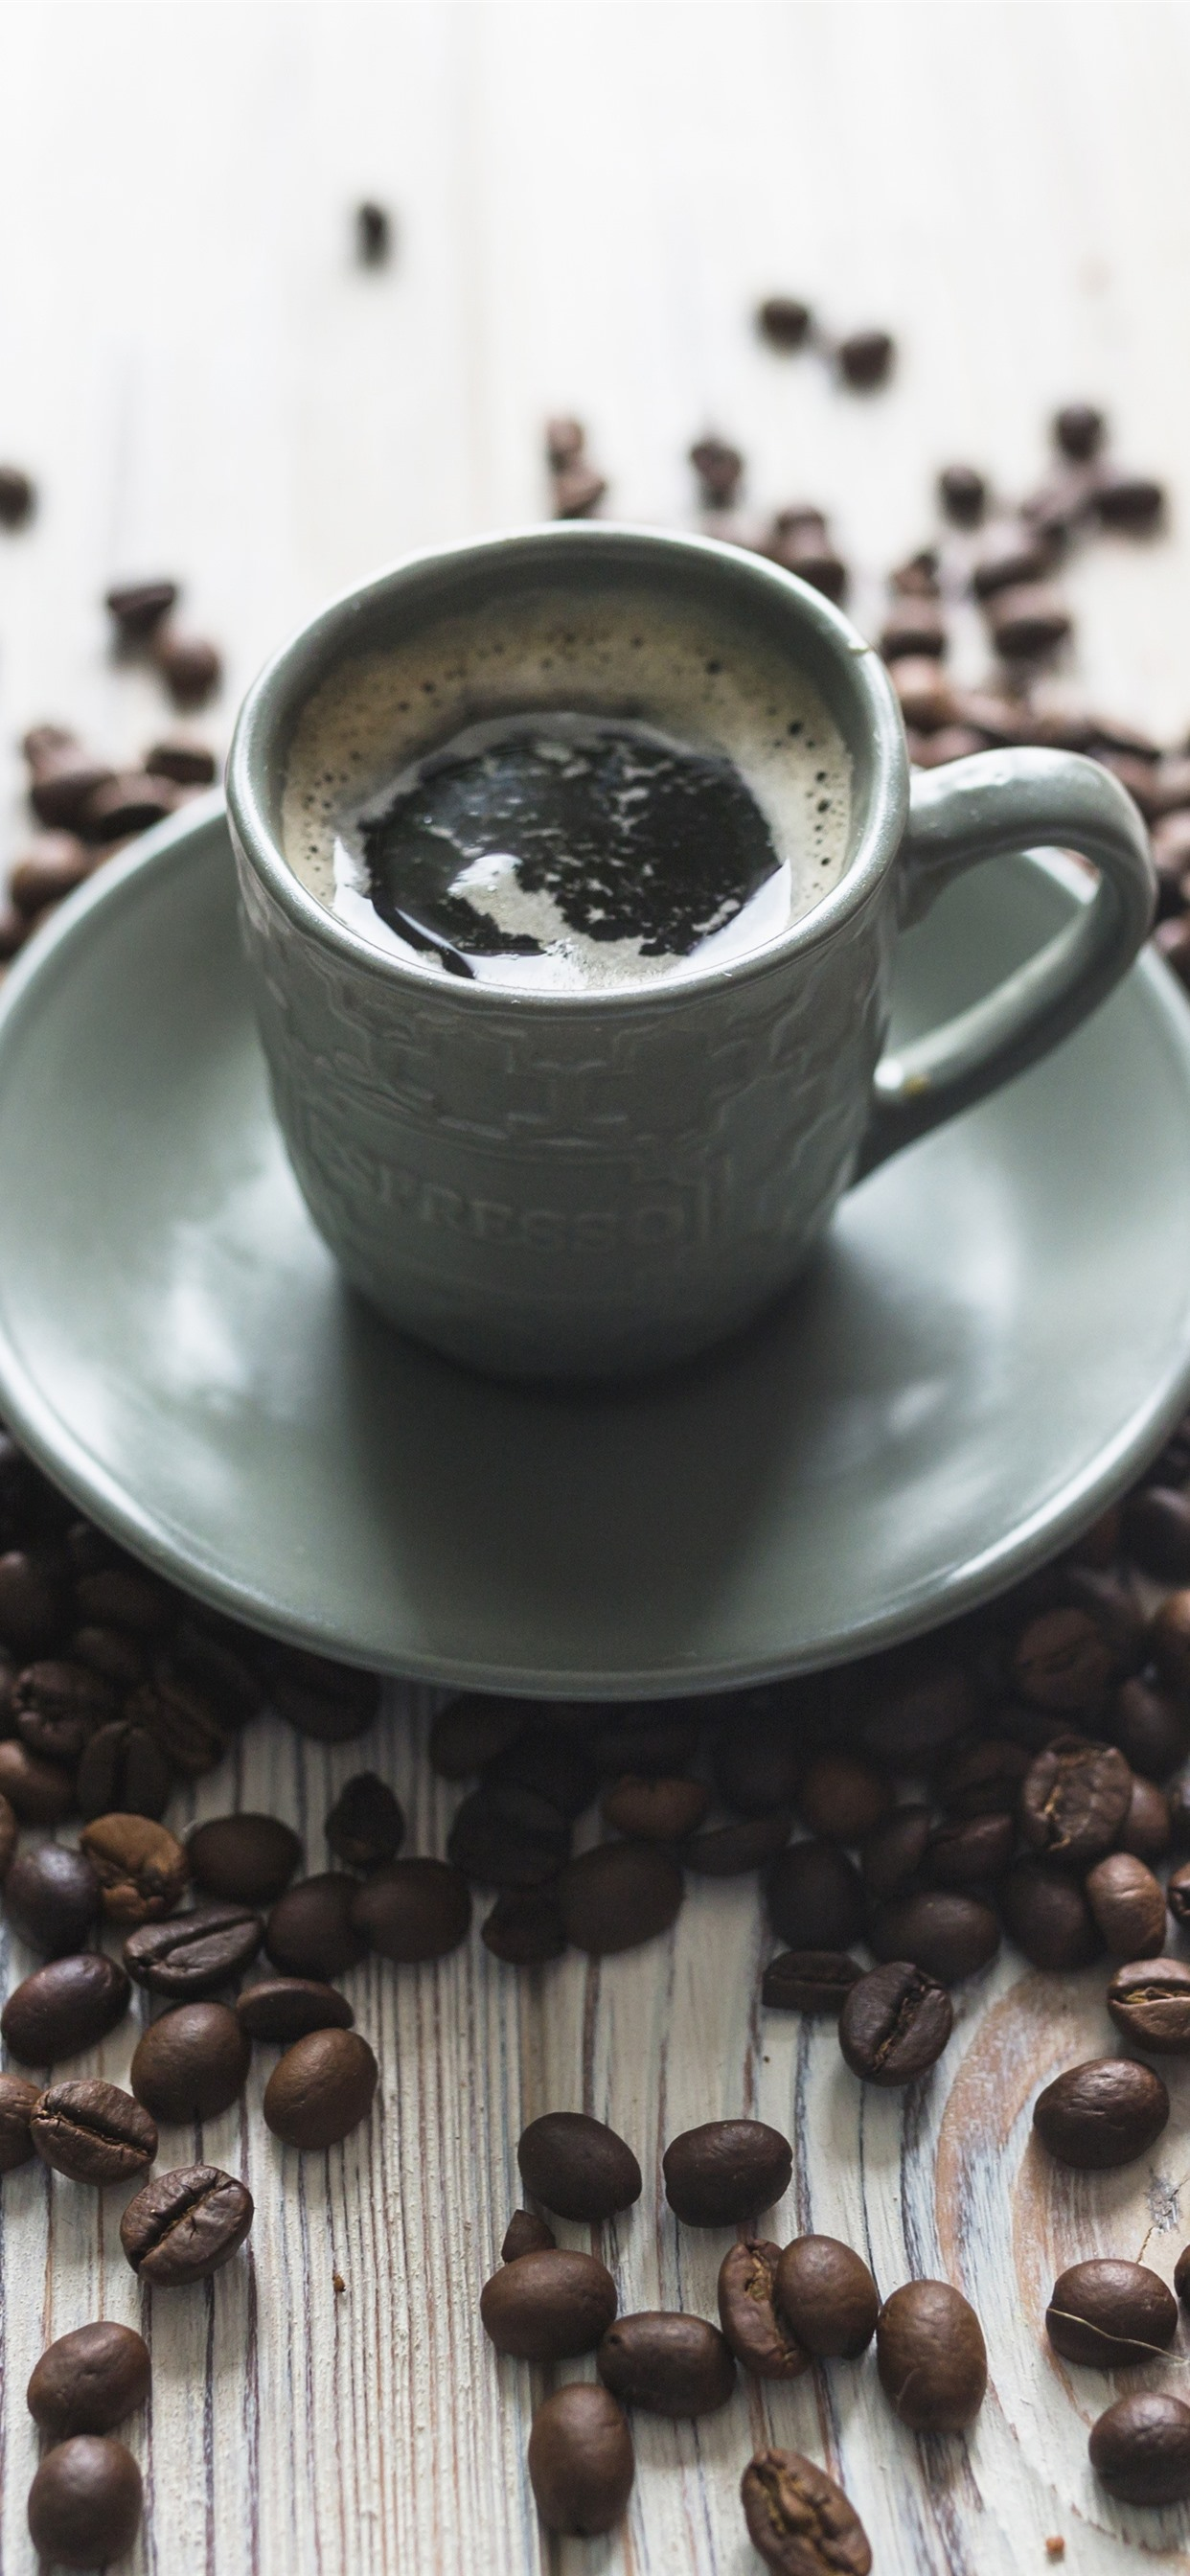 Coffee And Coffee Beans Cup Plates 1242x2688 Iphone Xs Max